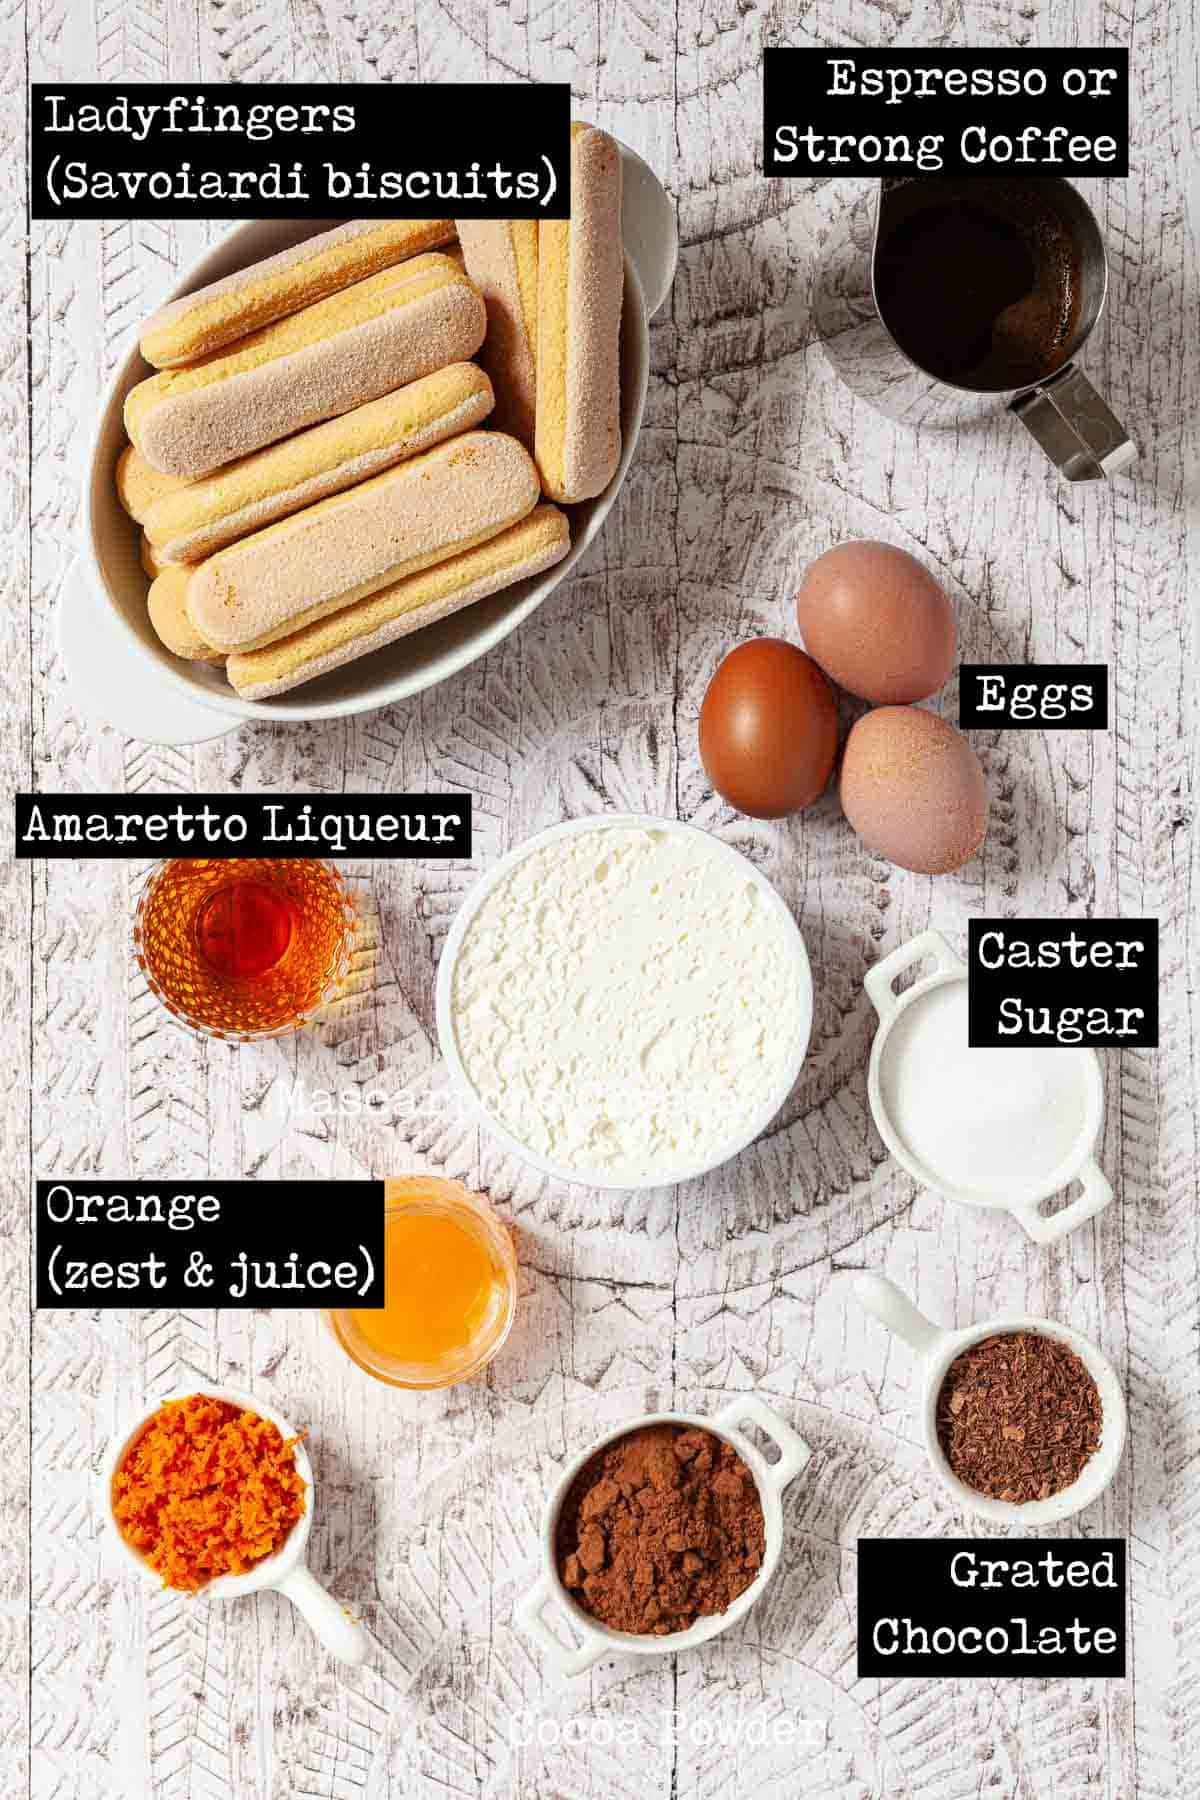 Ingredients for a classic coffee and mascarpone dessert with text overlay